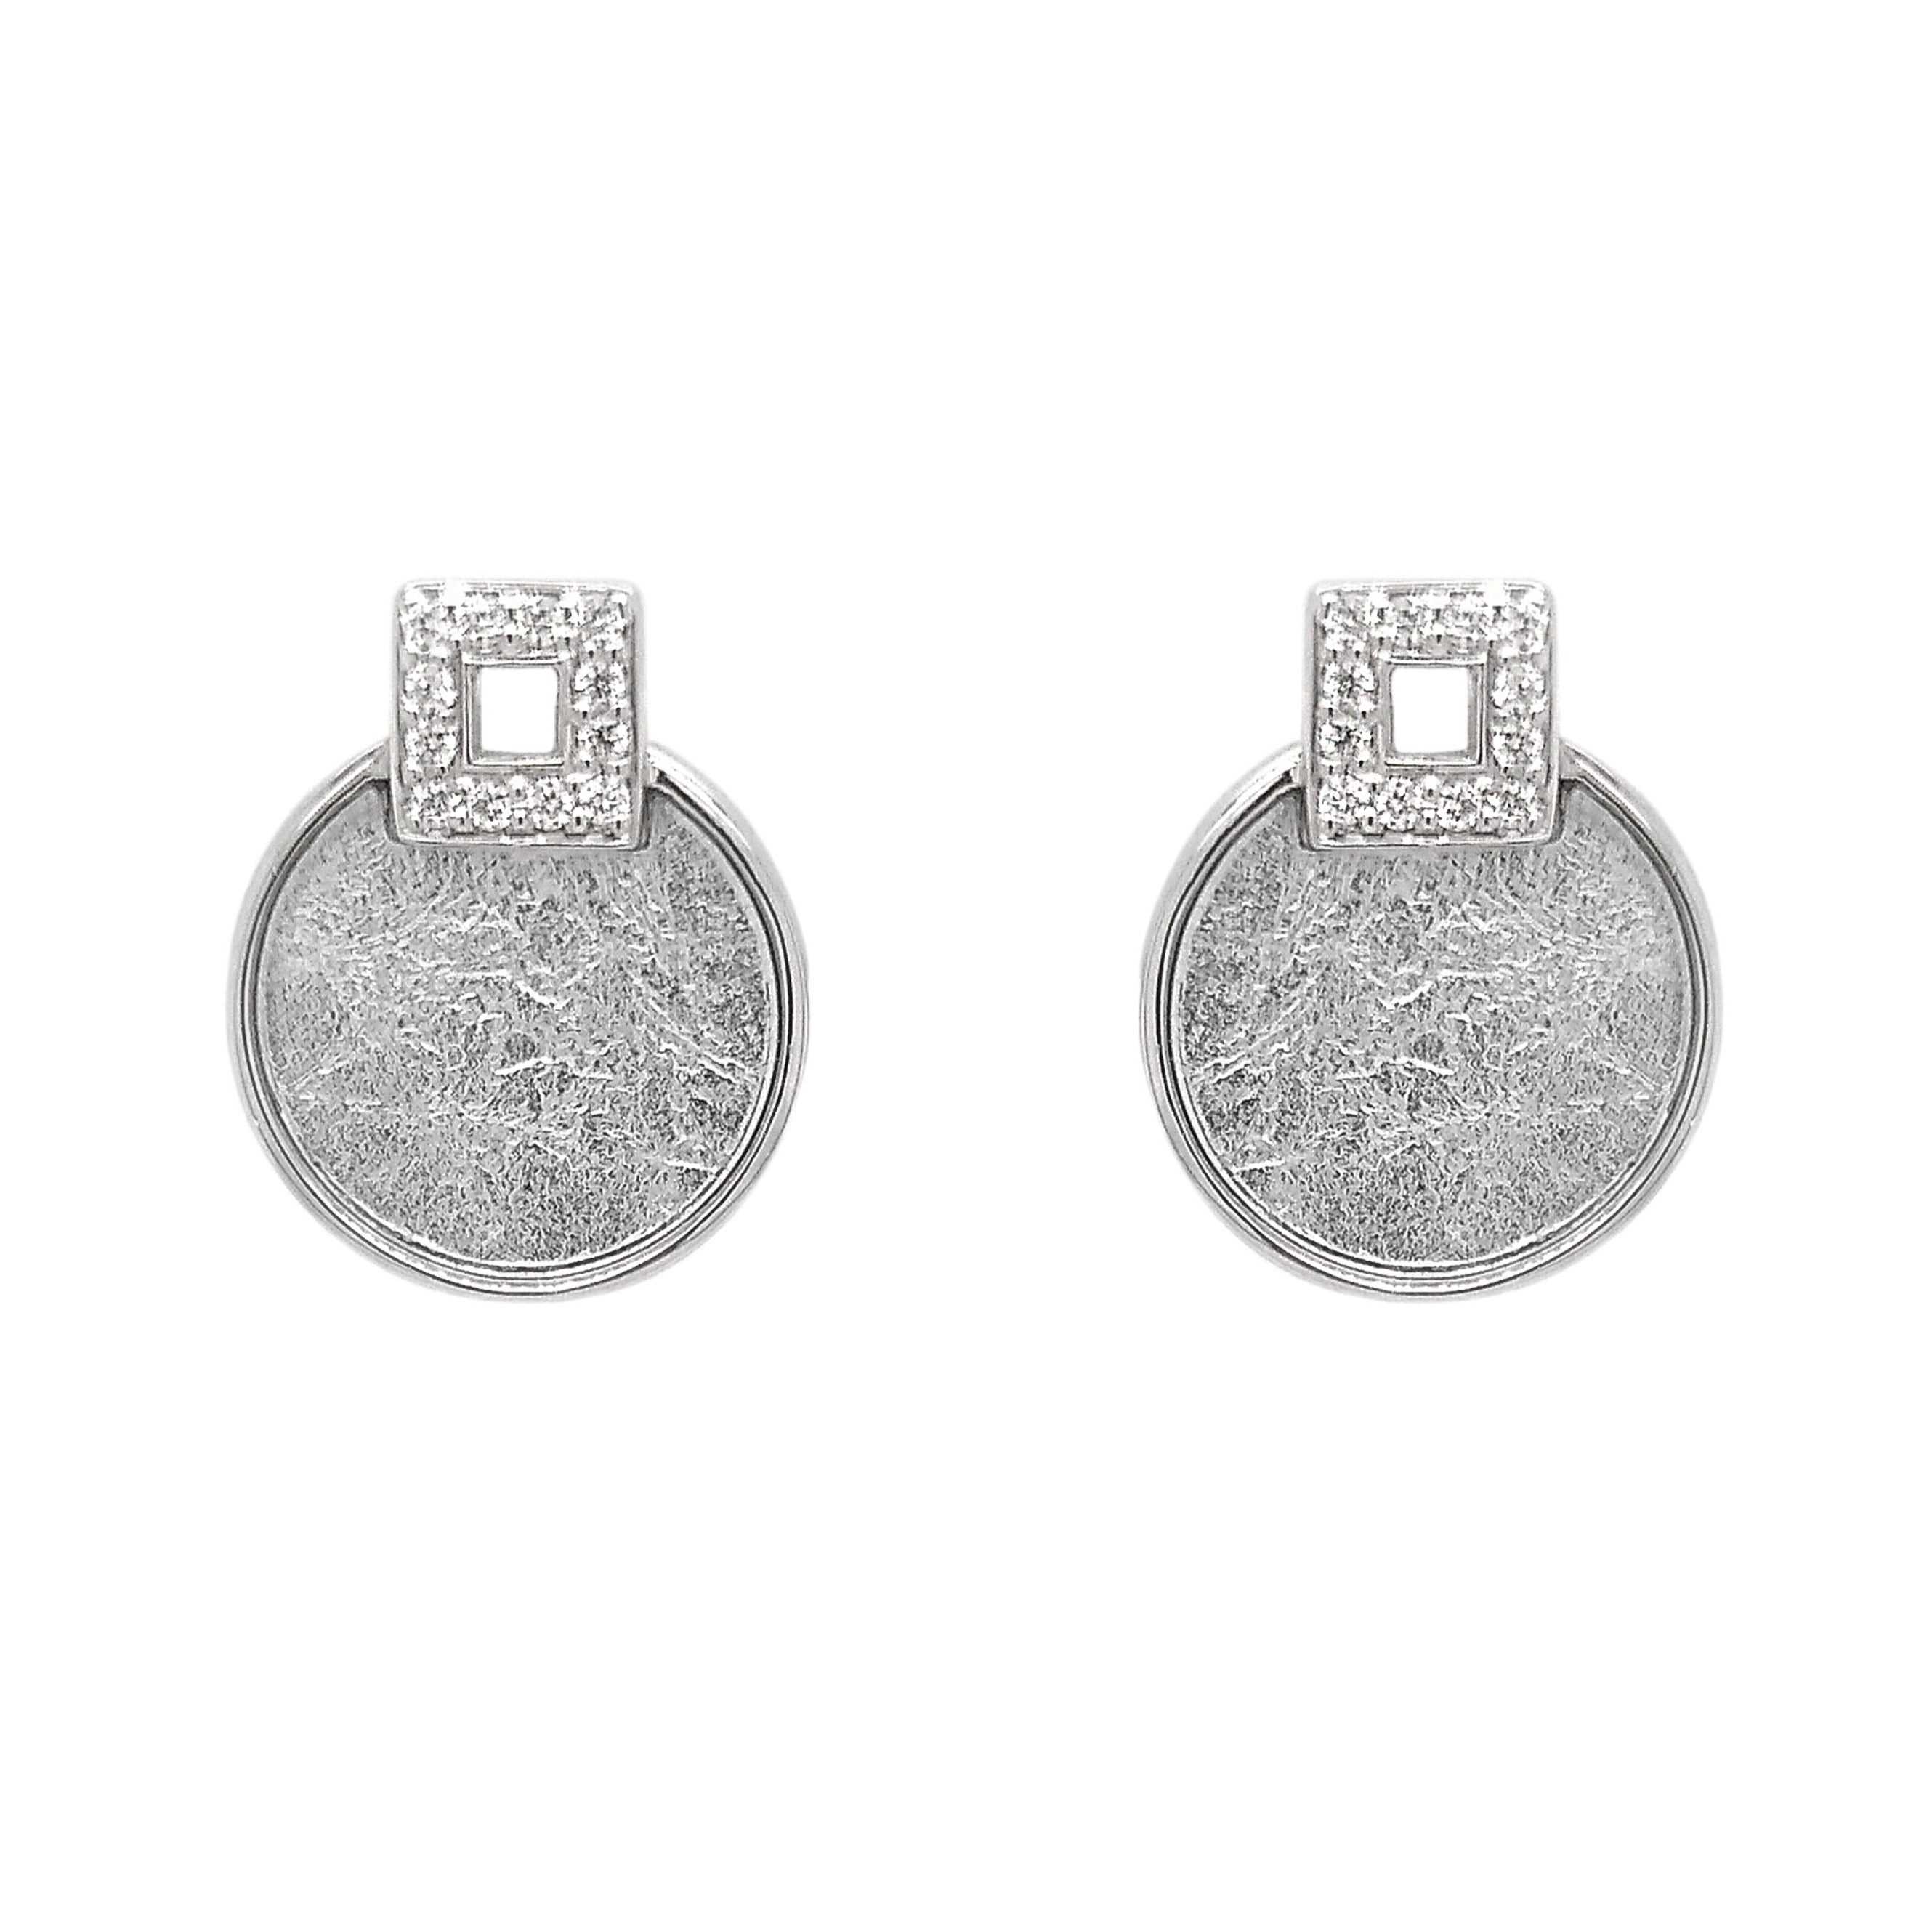 Silver Round Textured Sheet & CZ Earrings